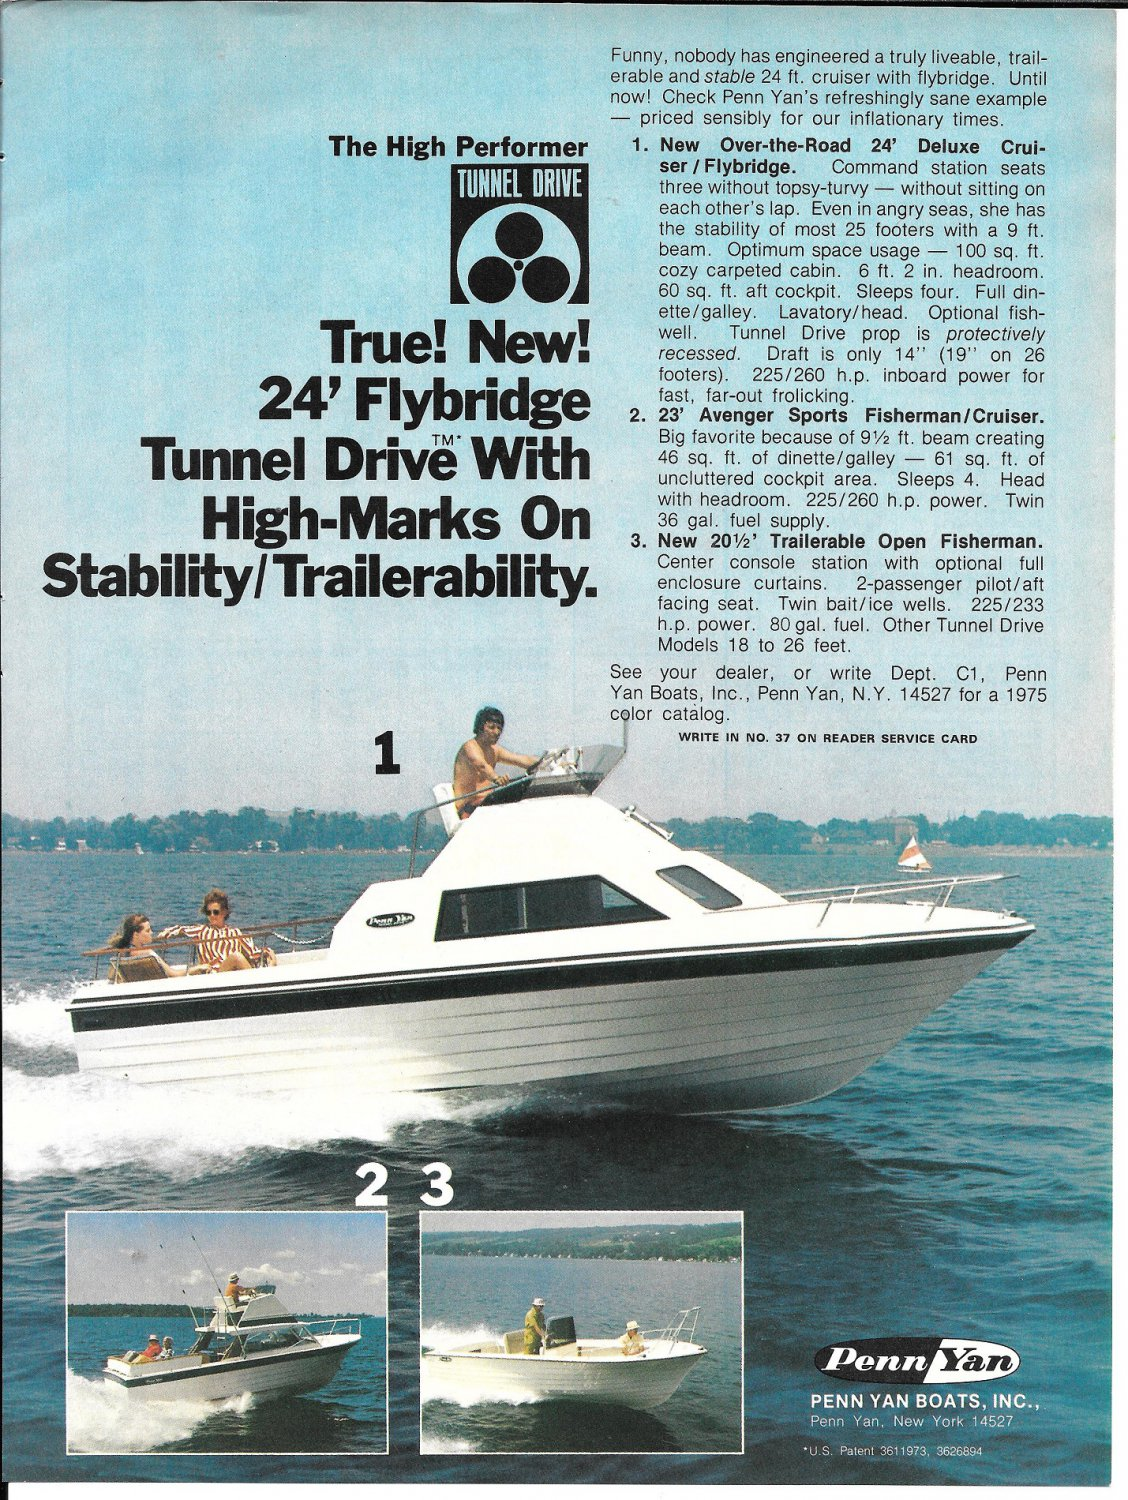 1975 Penn Yan Boats Color Ad- Great Photo of 24' Flybridge Tunnel Drive